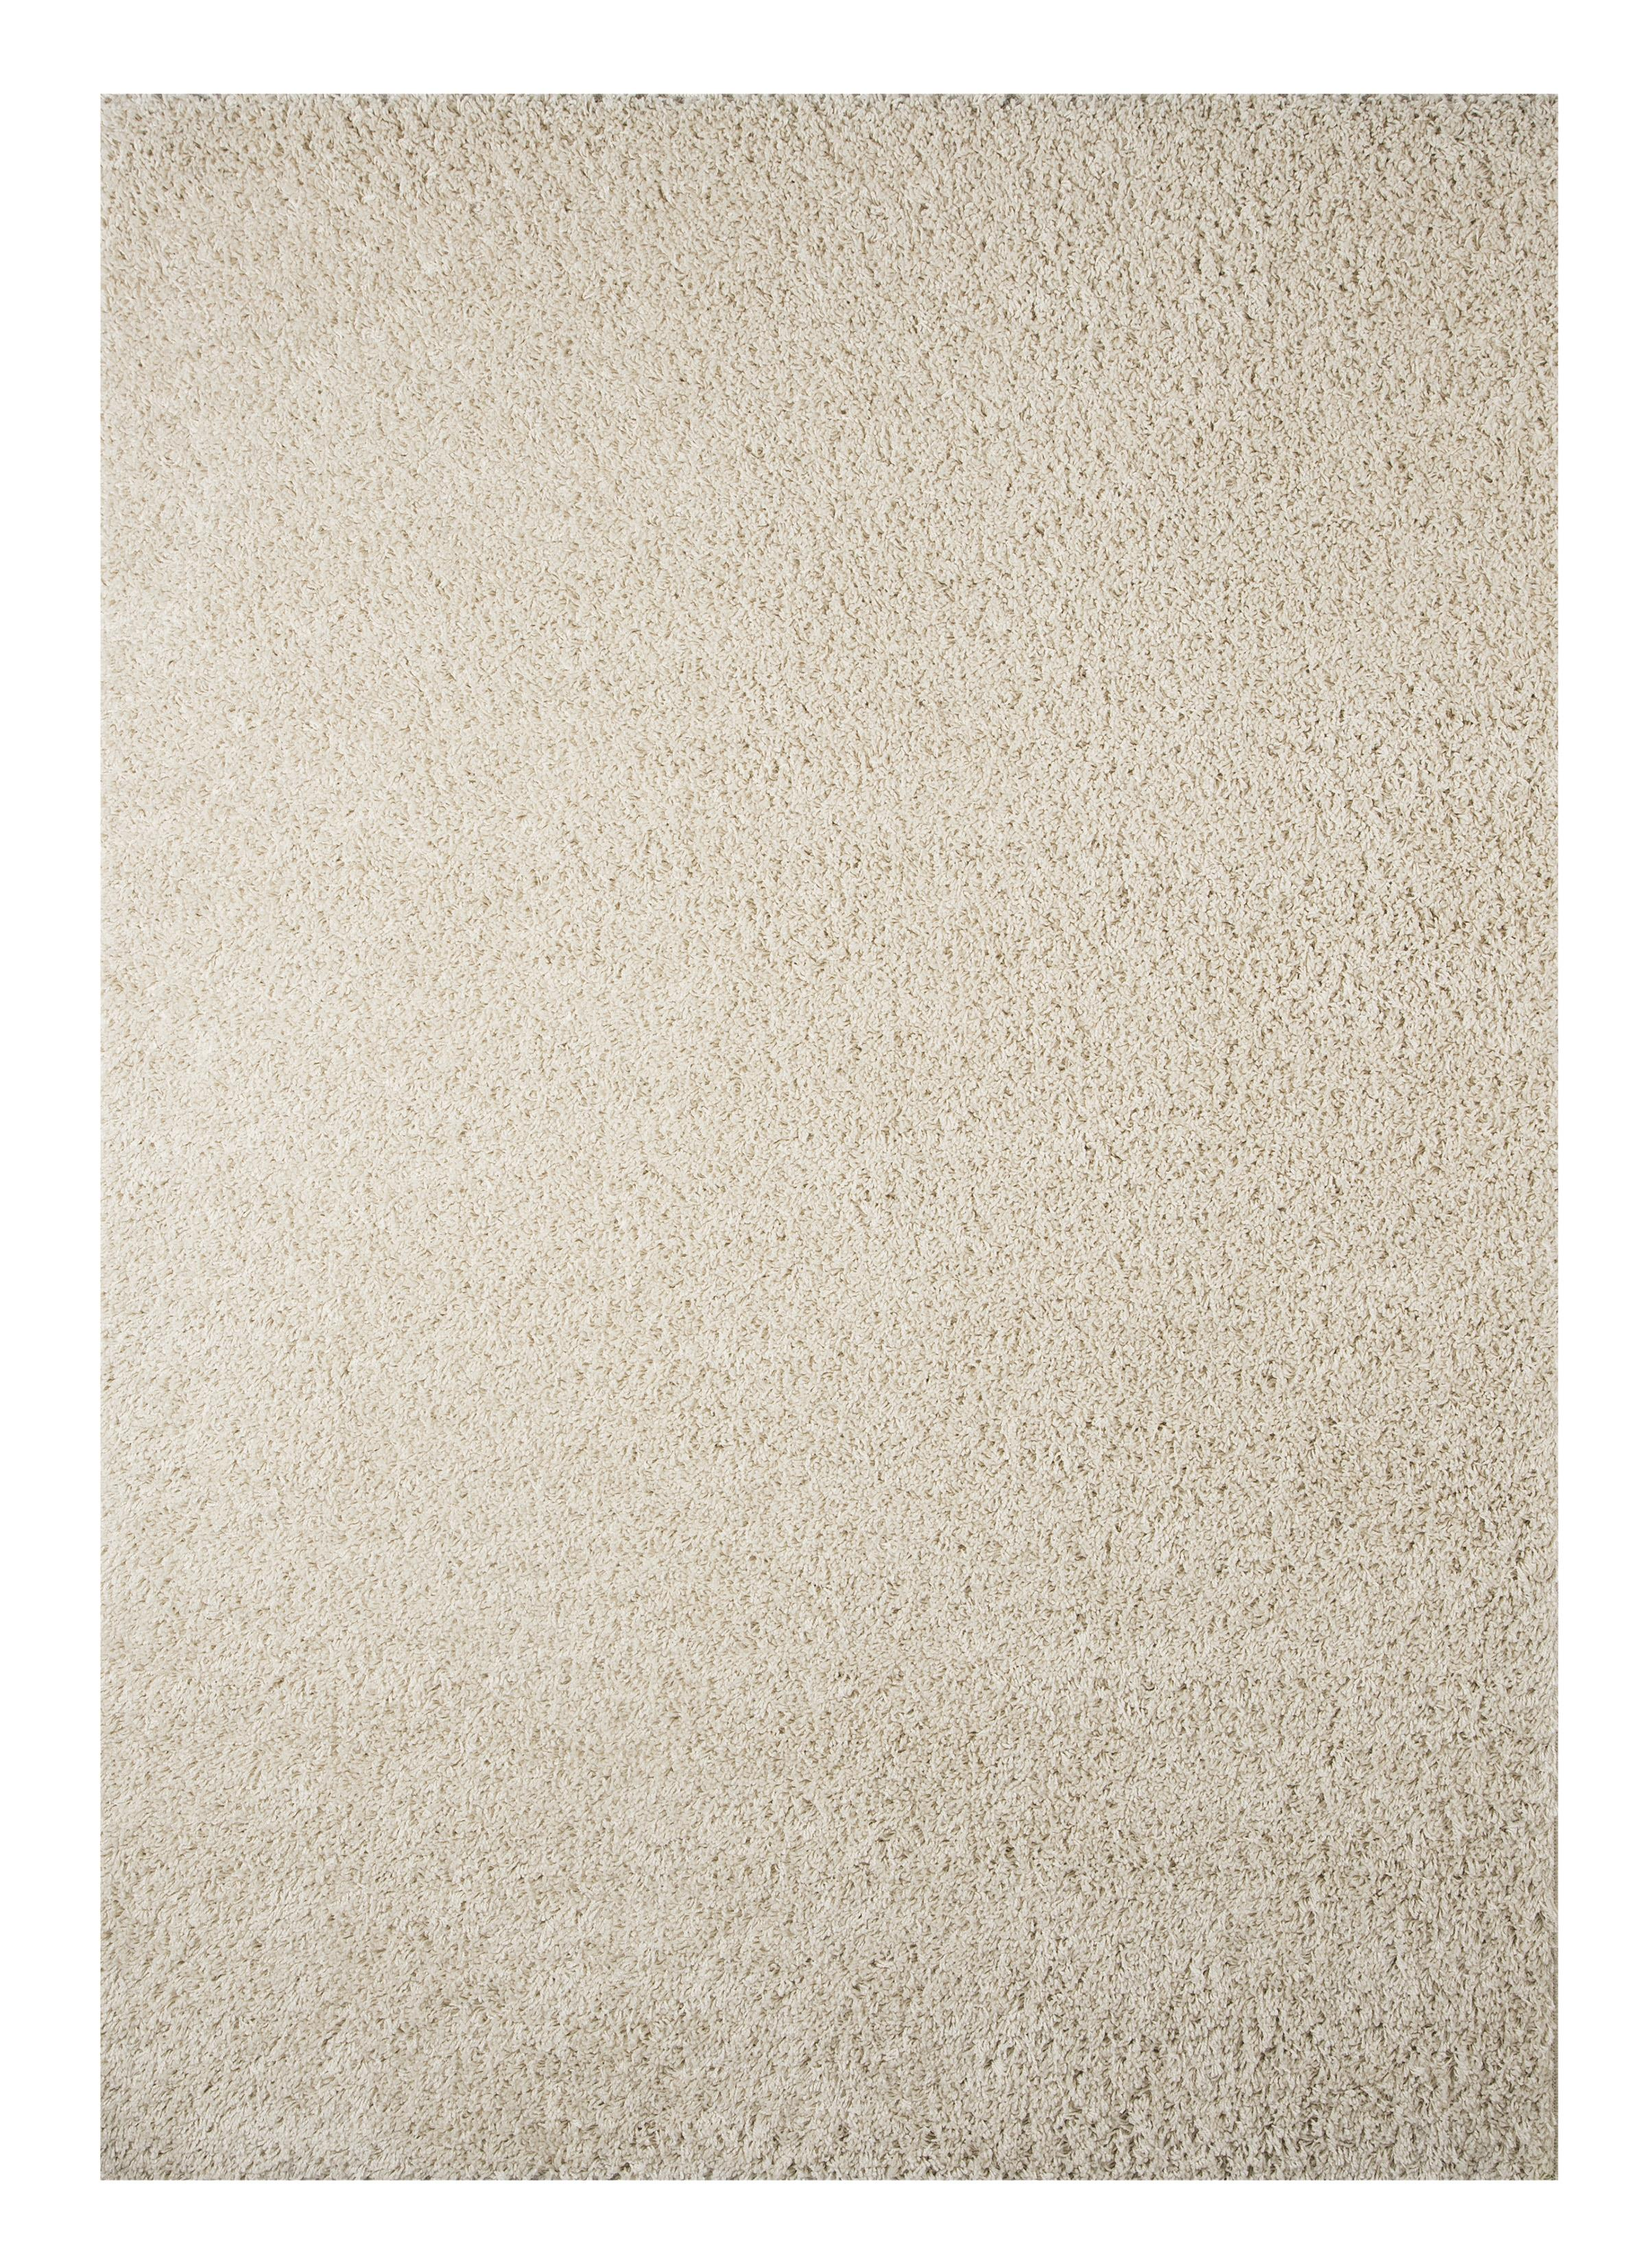 Contemporary Area Rugs Caci Snow Medium Rug by Signature at Walker's Furniture